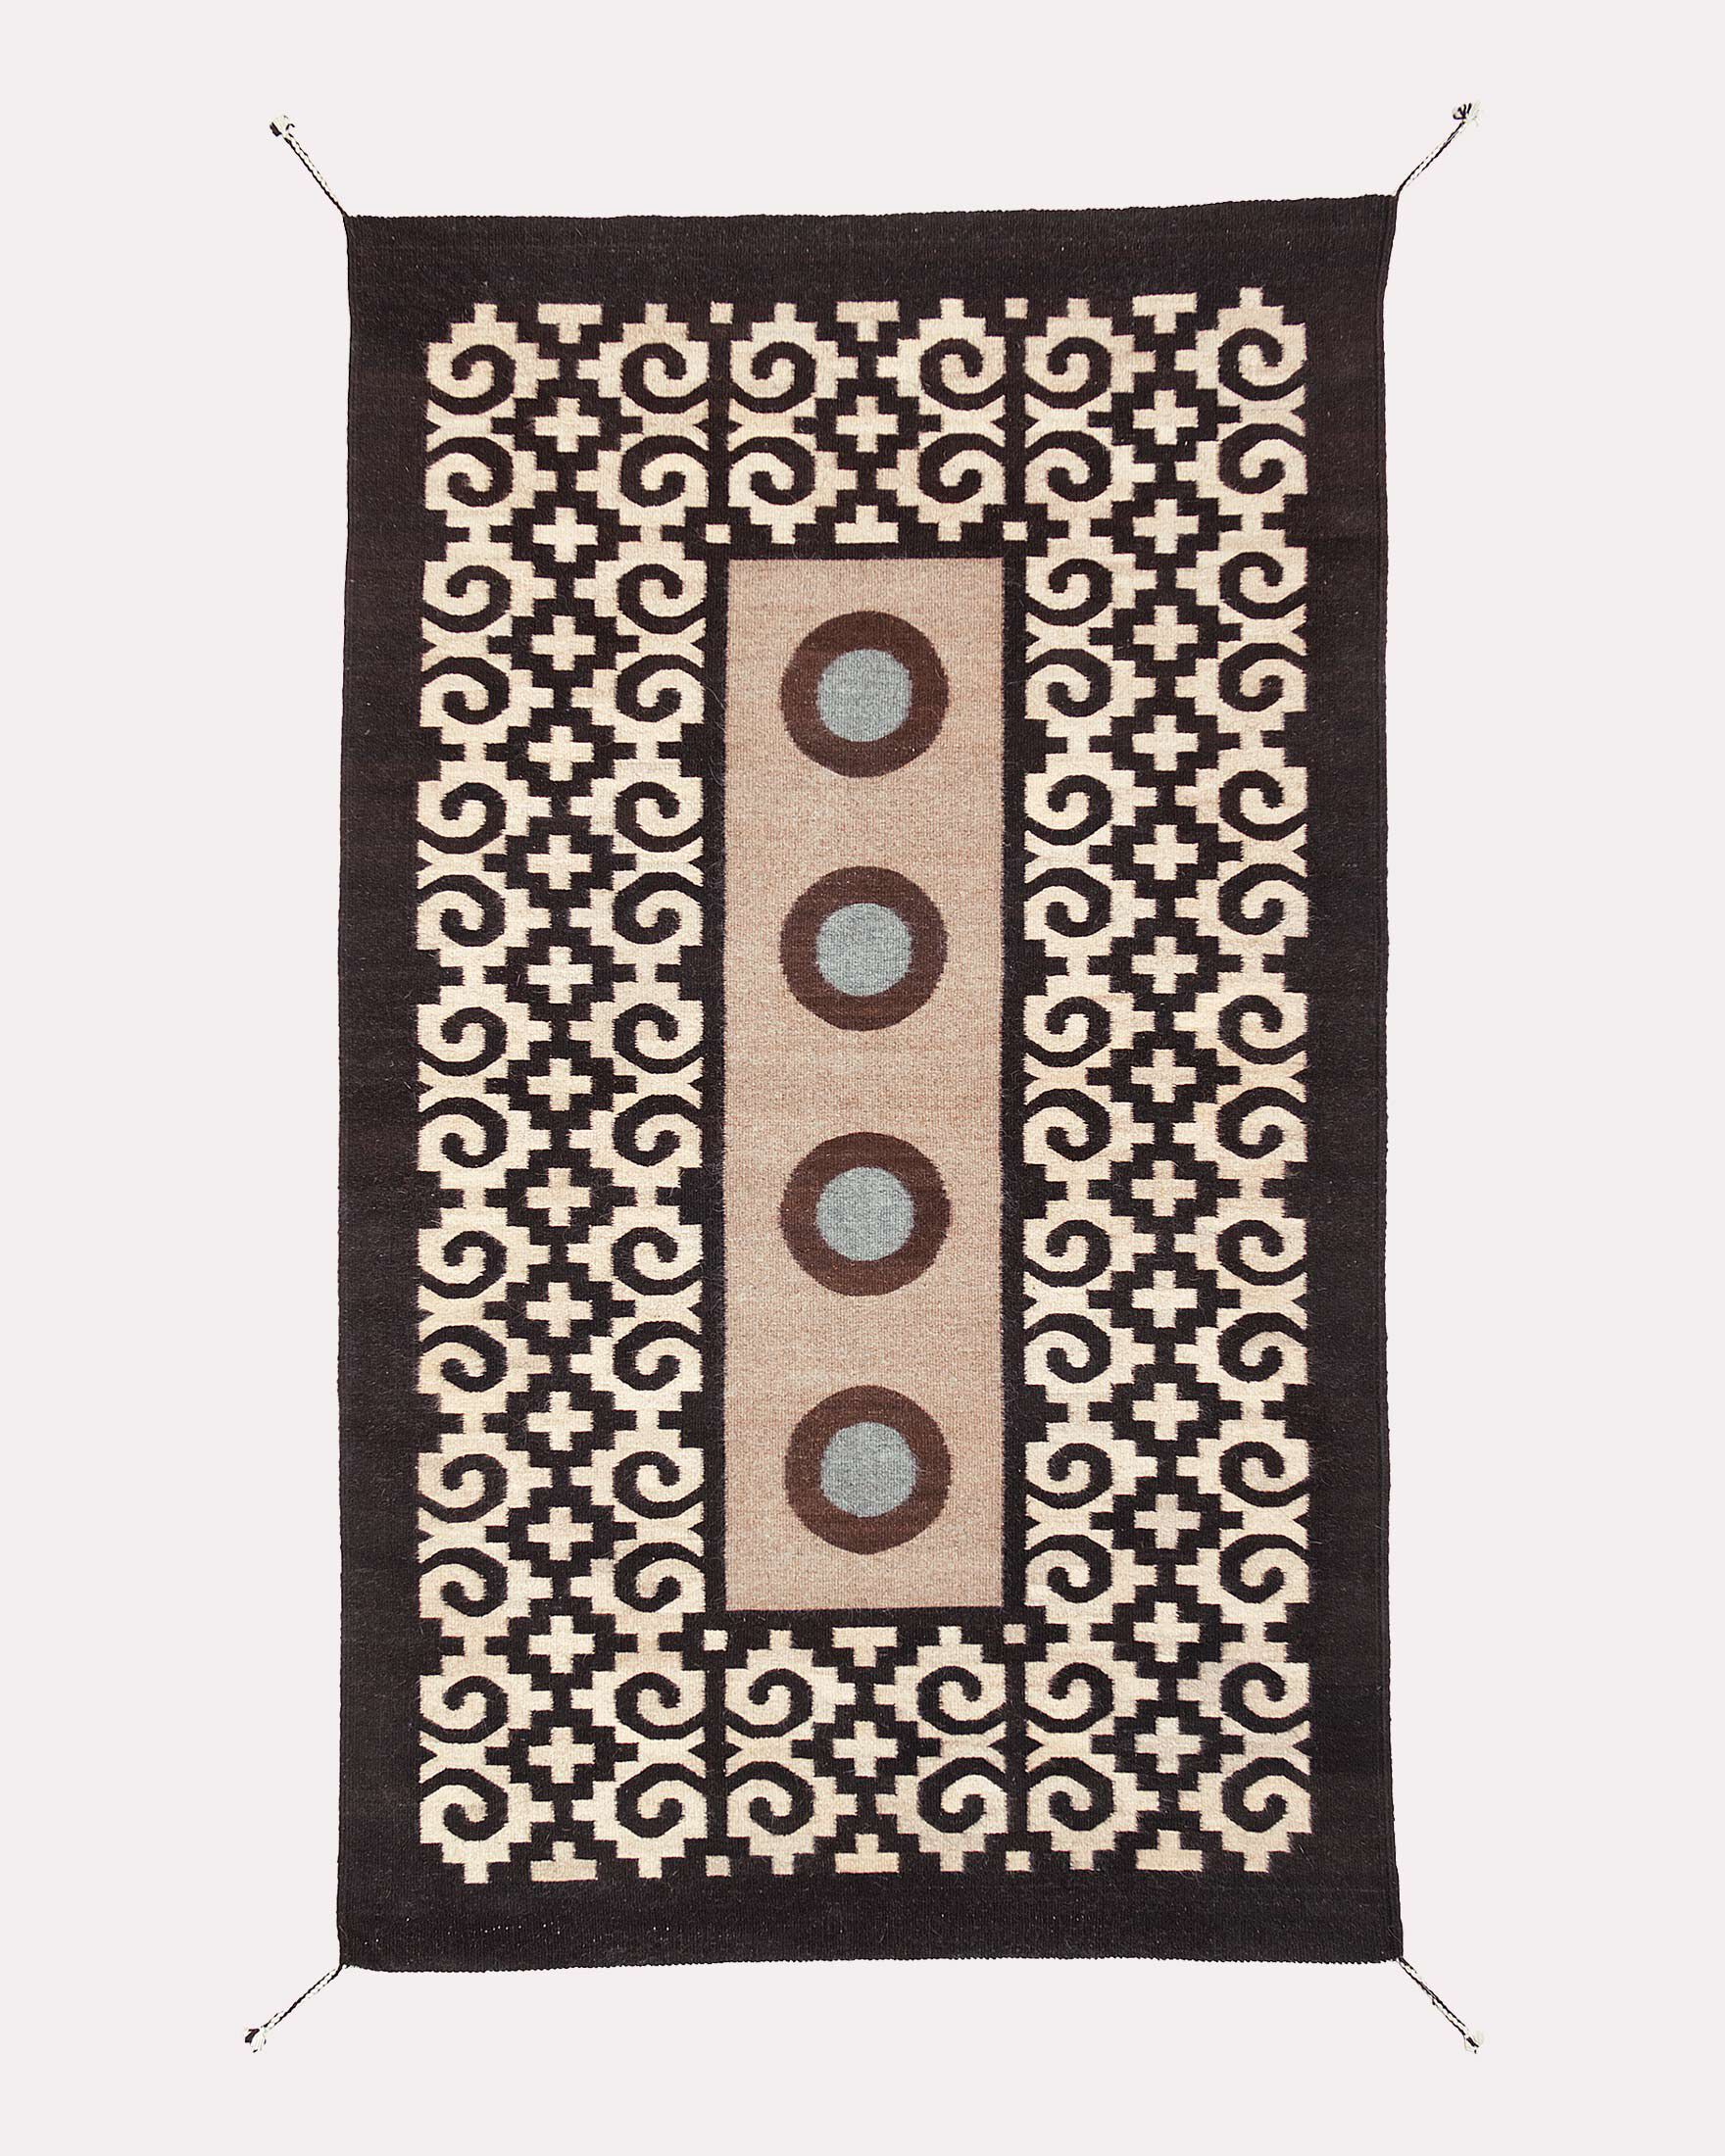 FOUR MIXTEC YEARS RUG ...